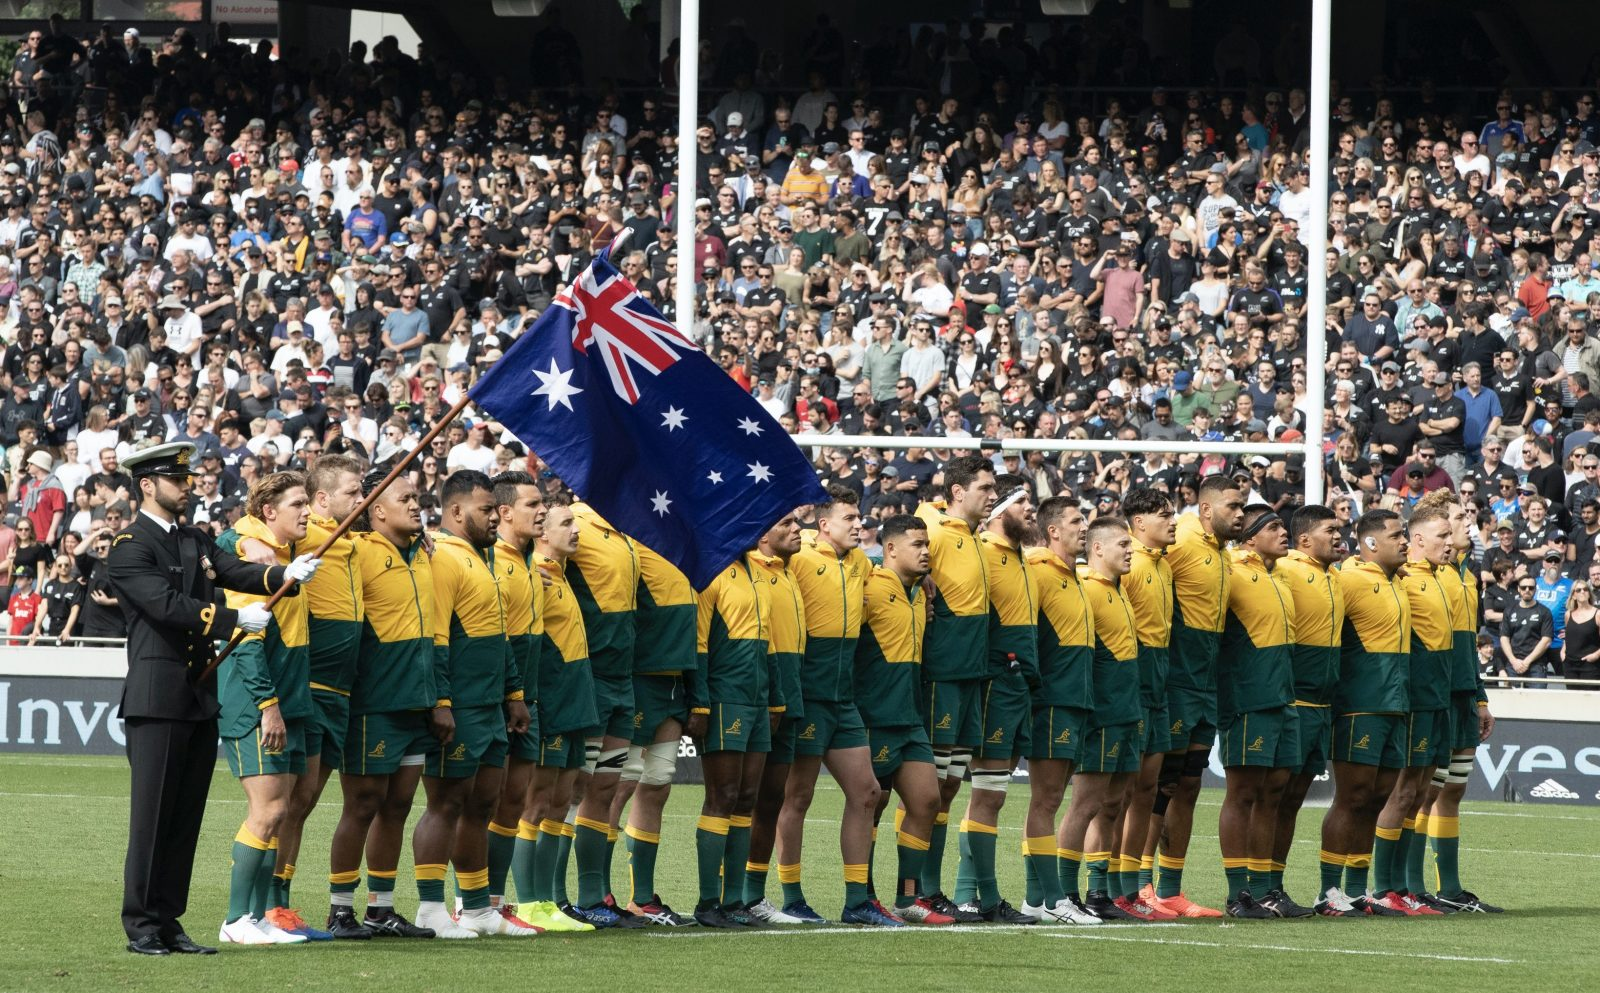 Die australische Rugby-Nationalmannschaft singt die Hymne (Archivbild) Foto: picture alliance / ASSOCIATED PRESS | Mark Baker